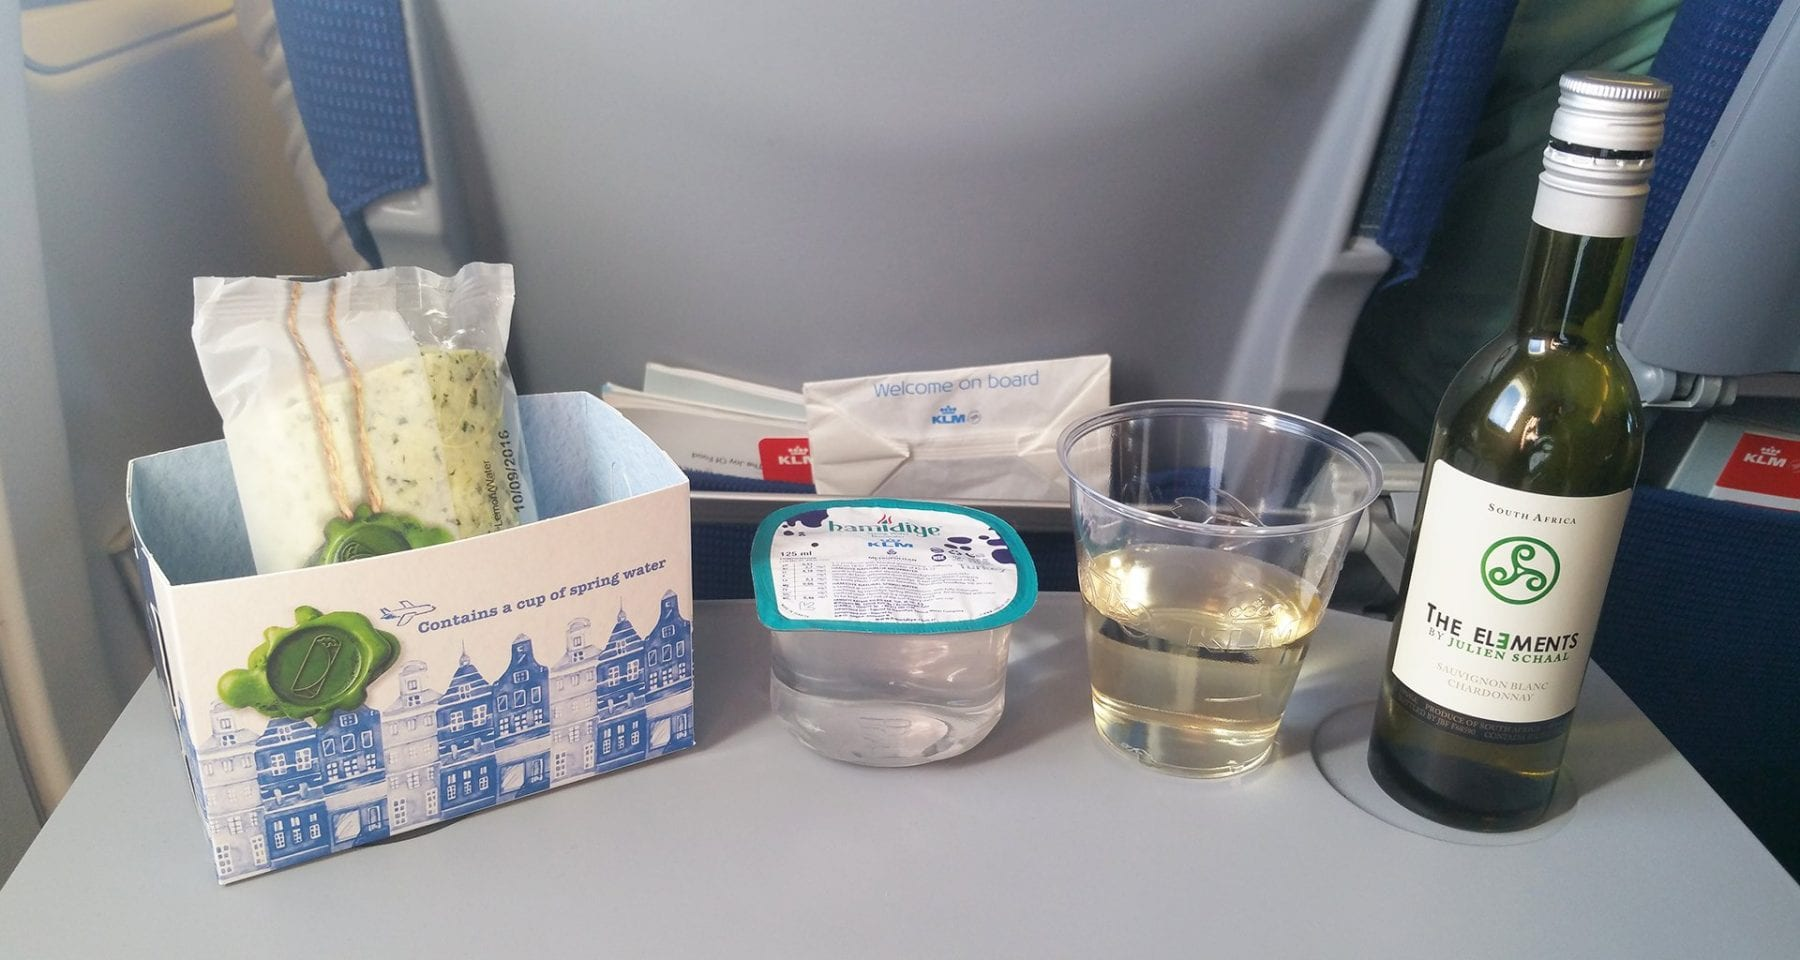 klm economy class meal on european flights